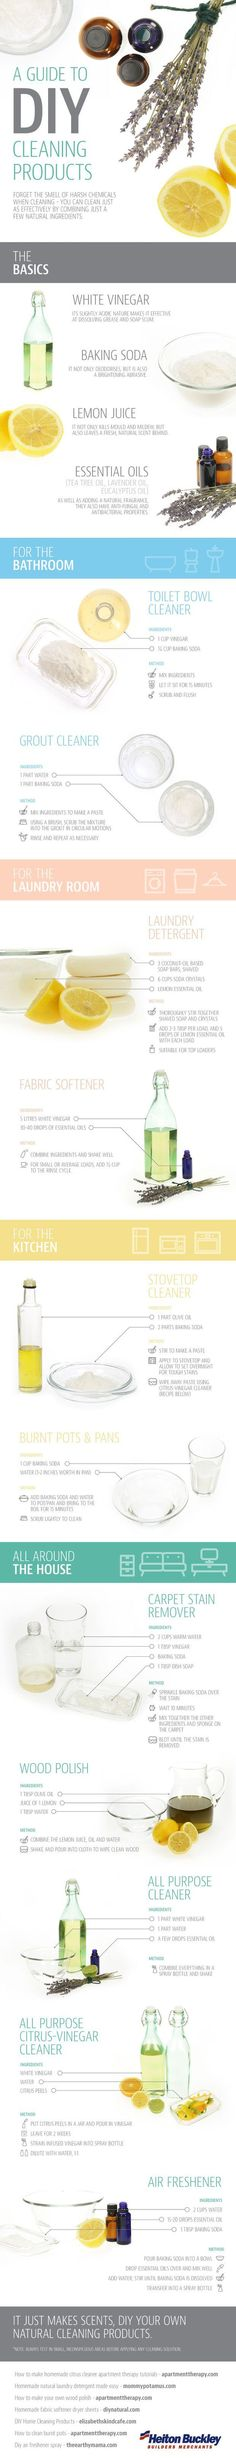 Natural Household Cleaner Recipes | The Budget Decorator